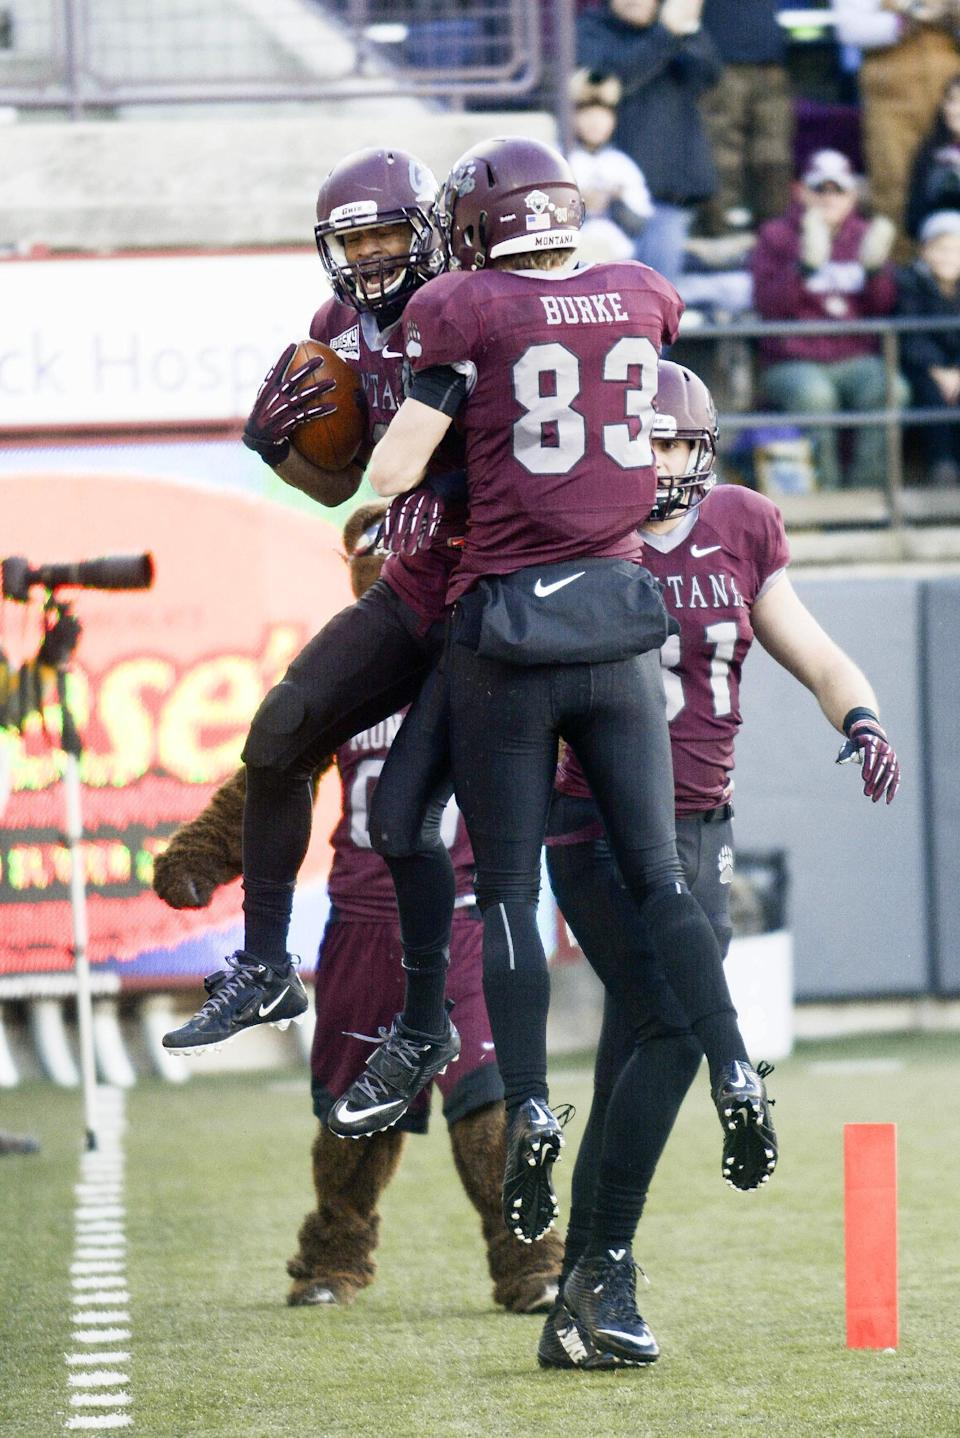 Montana wide receiver Jamaal Jones (6) celebrates his touchdown with wide receiver Ryan Burke (83) during the first half of an NCAA college football playoff game, Saturday, Nov. 29, 2014, in Missoula, Mont. (AP Photo/Lido Vizzutti)